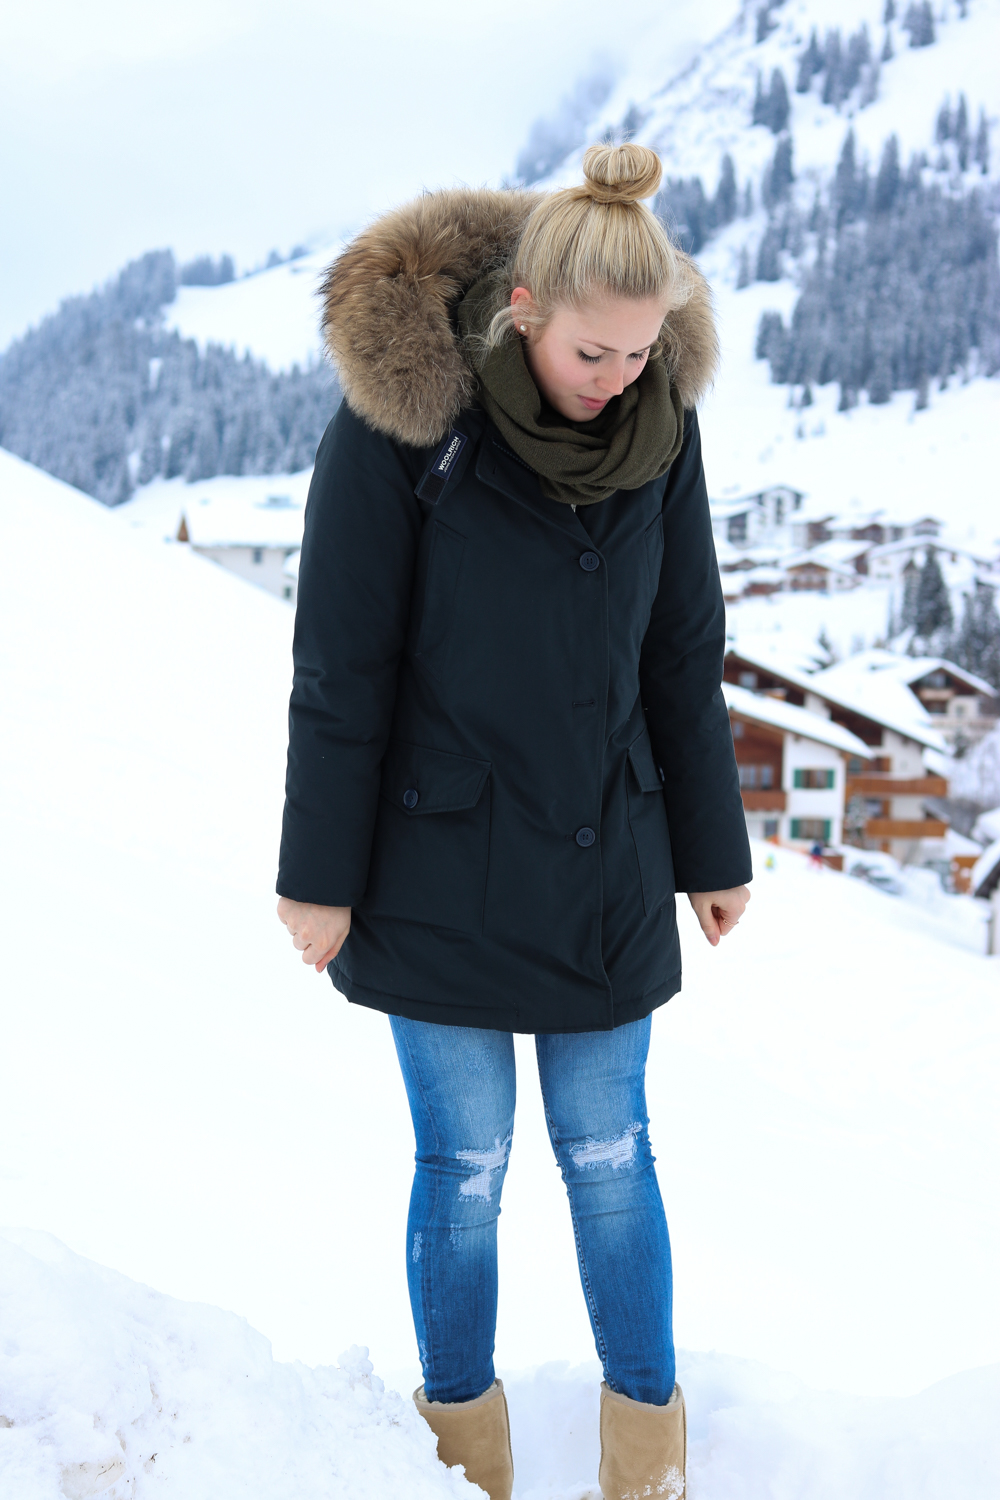 Bits and Bobs by Eva, Blog, Austrian Blog, Österreichische Blog, lovedailydose, your daily treat, fashion, beauty, food, interior, fitness, new, bitsandbobsbyeva.com, travel, winter, schnee outfit aus lech, lech, schnee, outfit, fashion outfit, woolwich, ugg boots